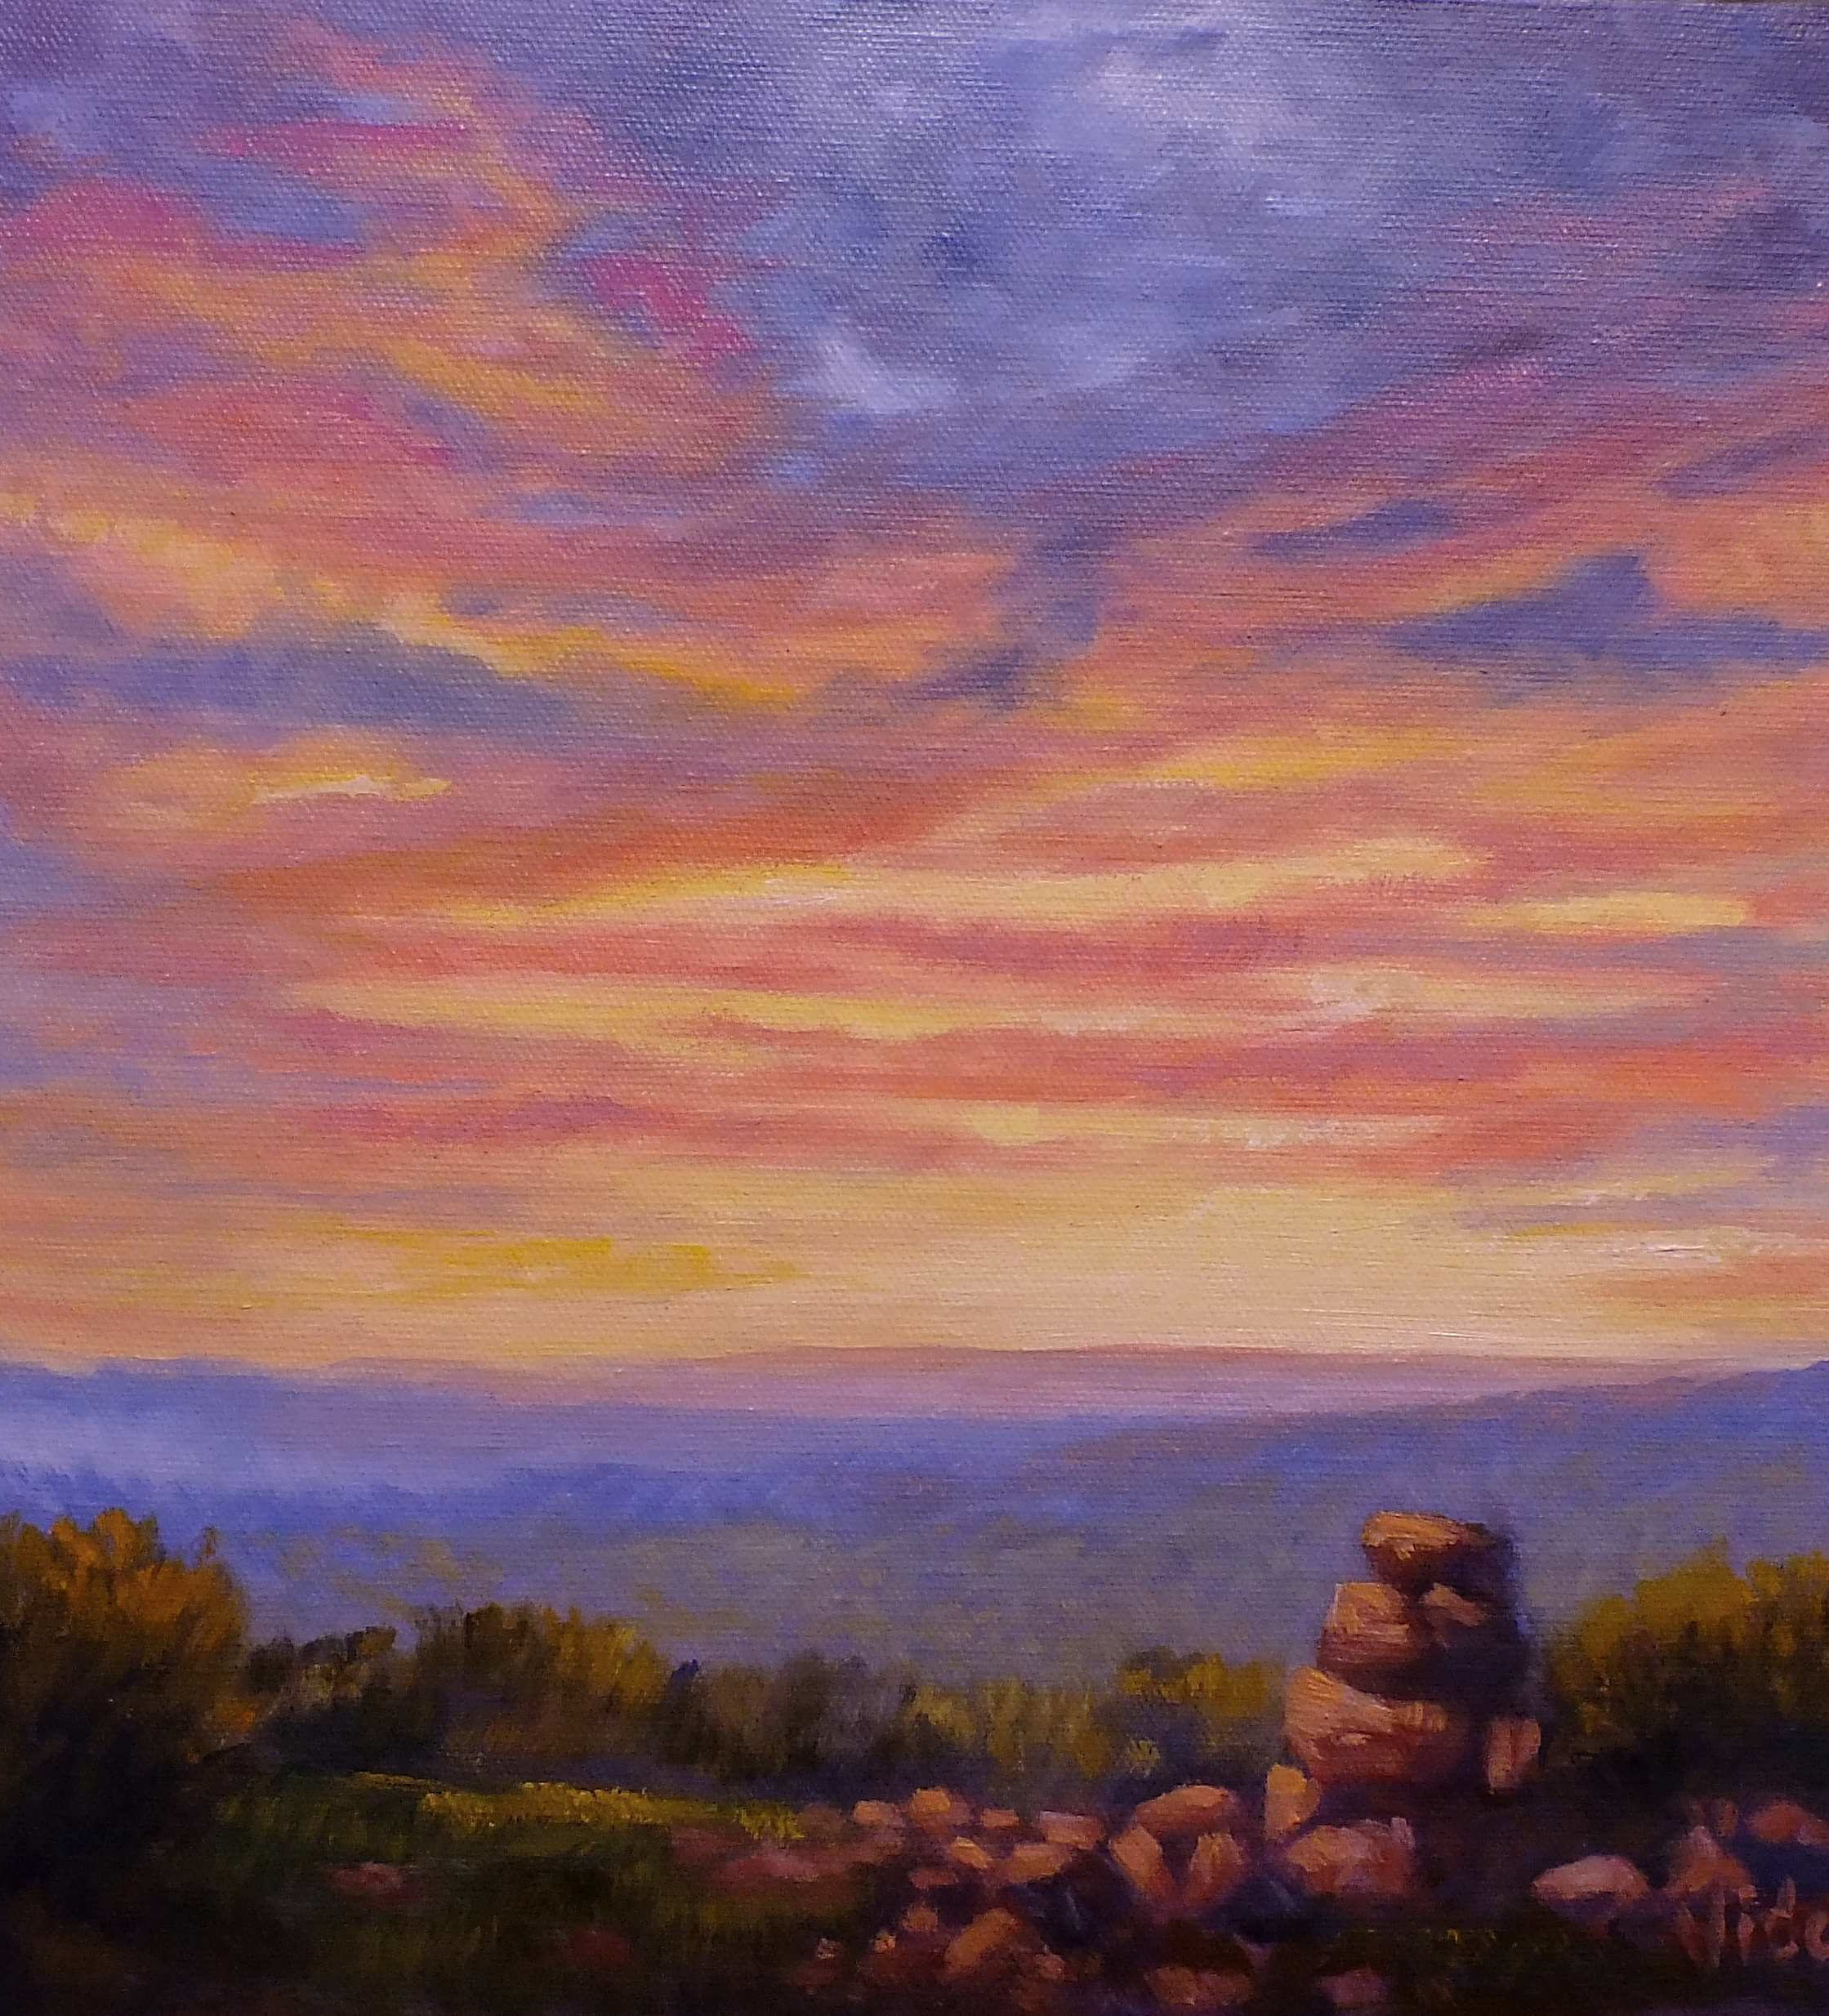 Sunset Sky- Oil Painting for Beginners